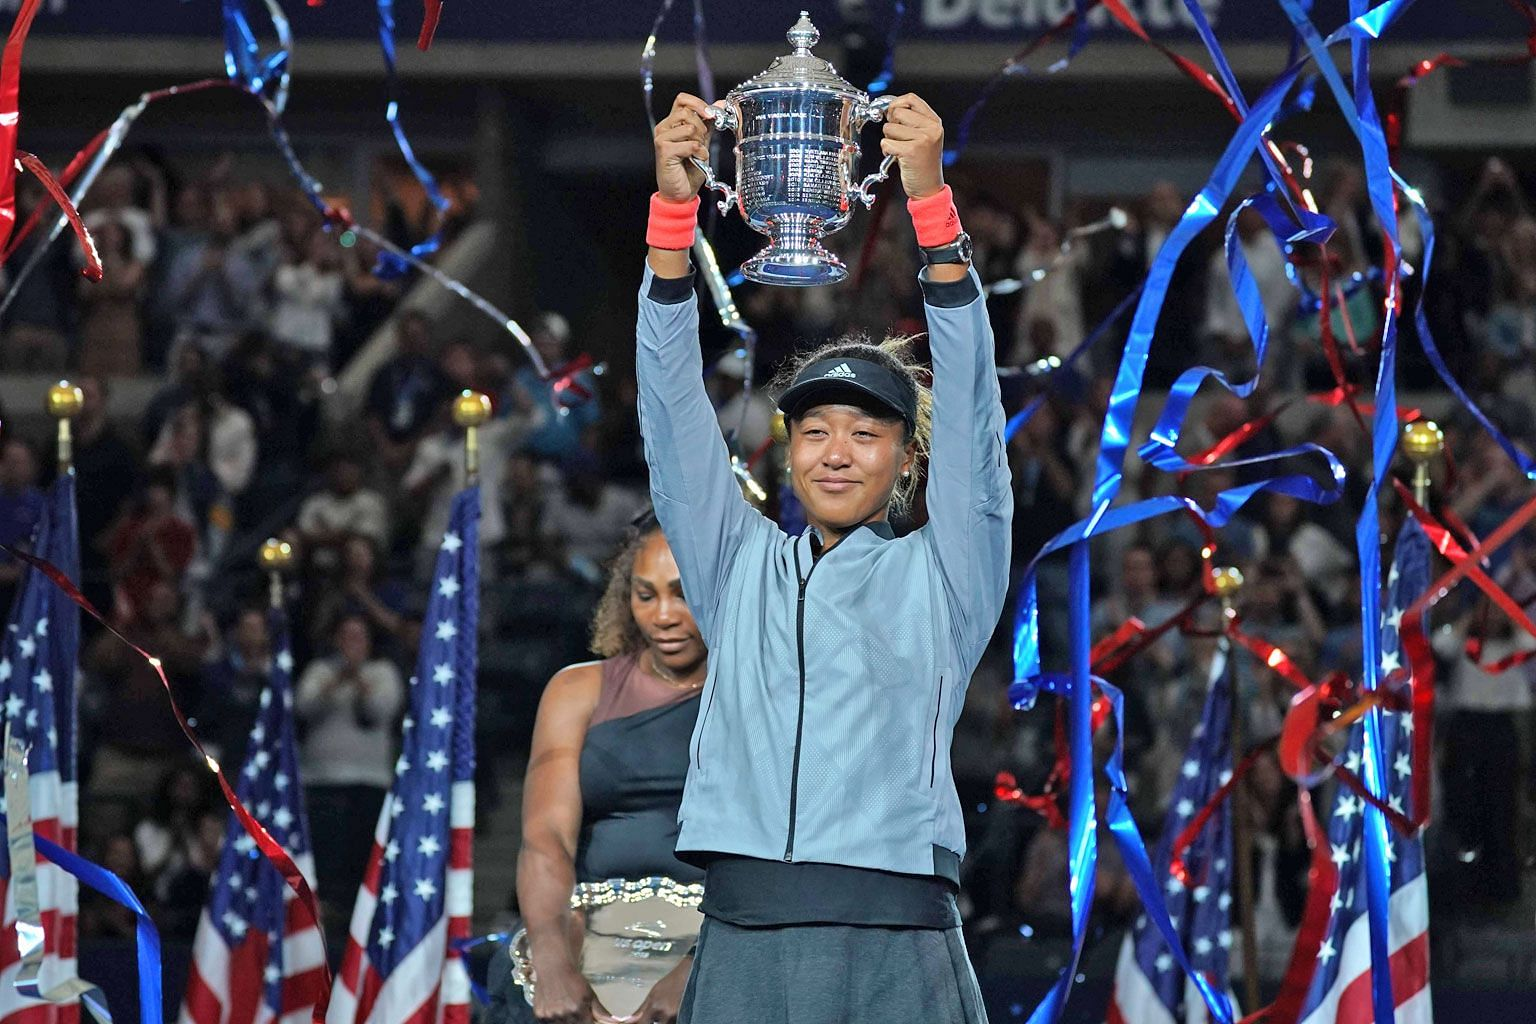 Naomi Osaka hoisting the US Open trophy after beating former world No. 1 Serena Williams in Saturday's final. She is only the second Asian woman to win a Grand Slam singles title.